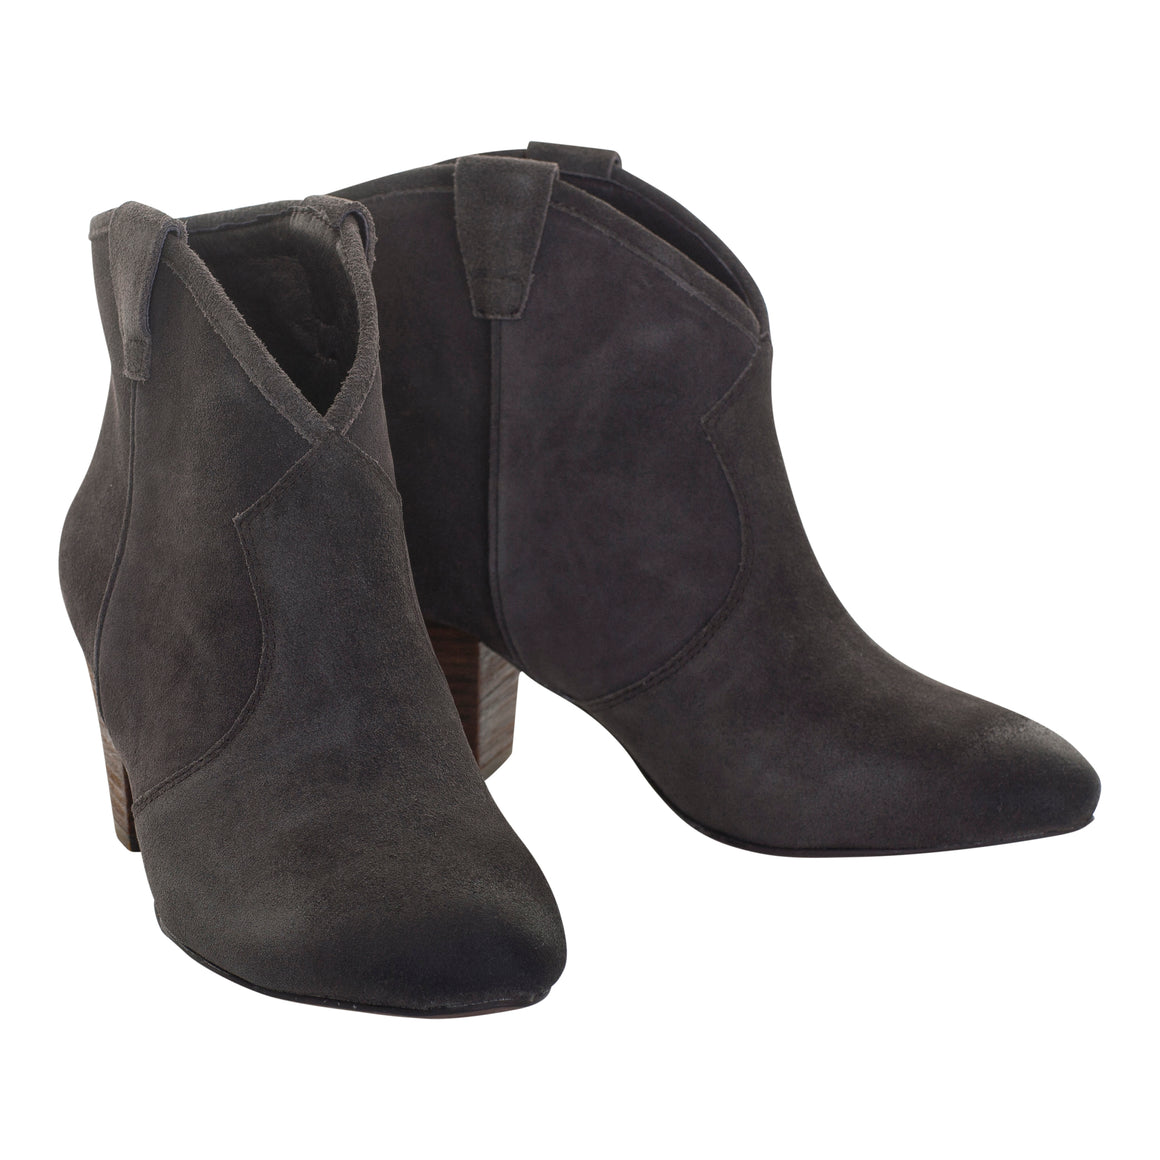 Jalouse Ankle Boot for Women in Wood Ash